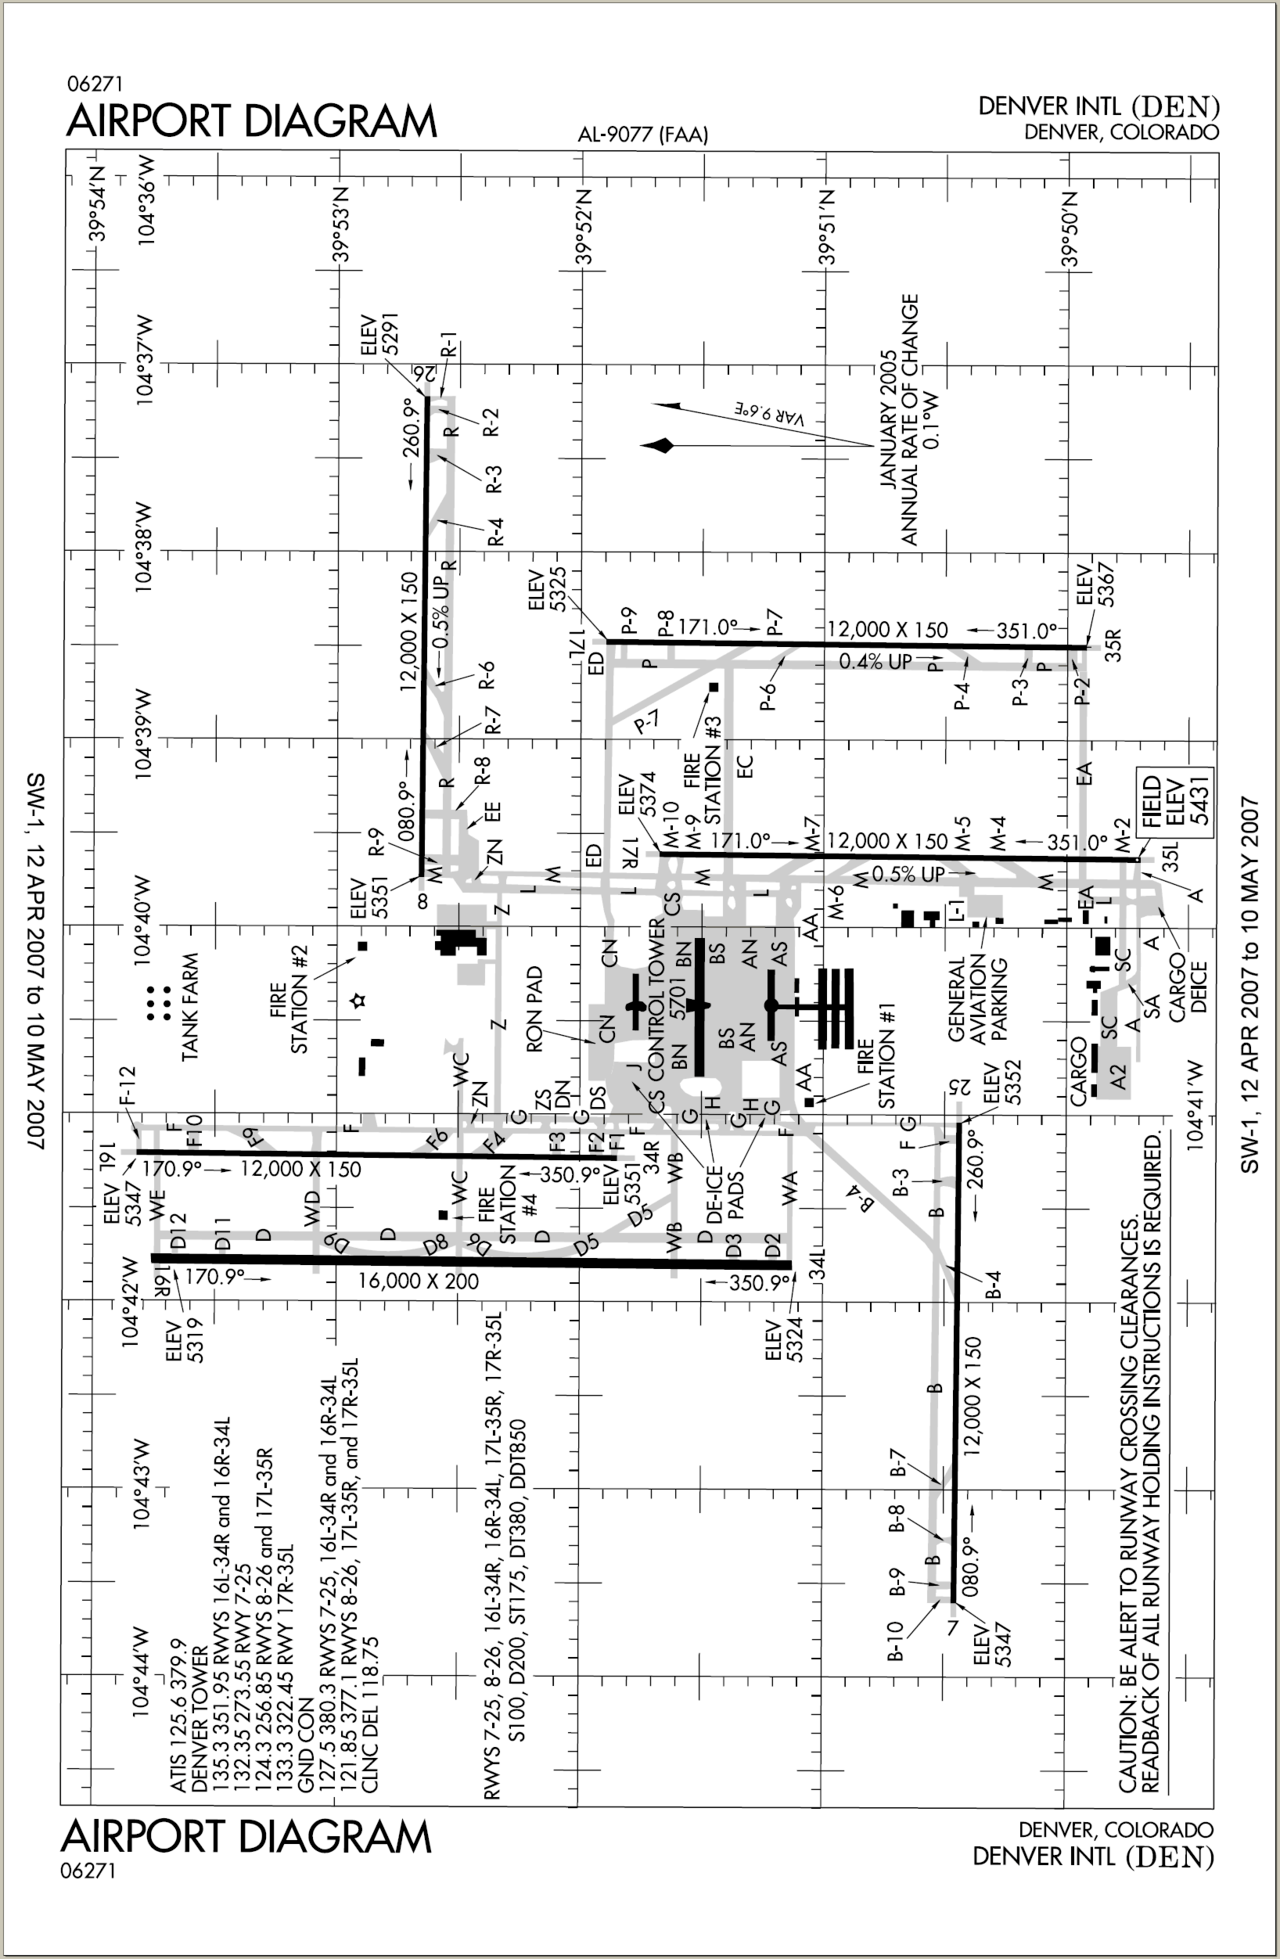 saitek x52 wiring diagram auto electrical wiring diagram saitek x52 2013 related with saitek x52 wiring diagram